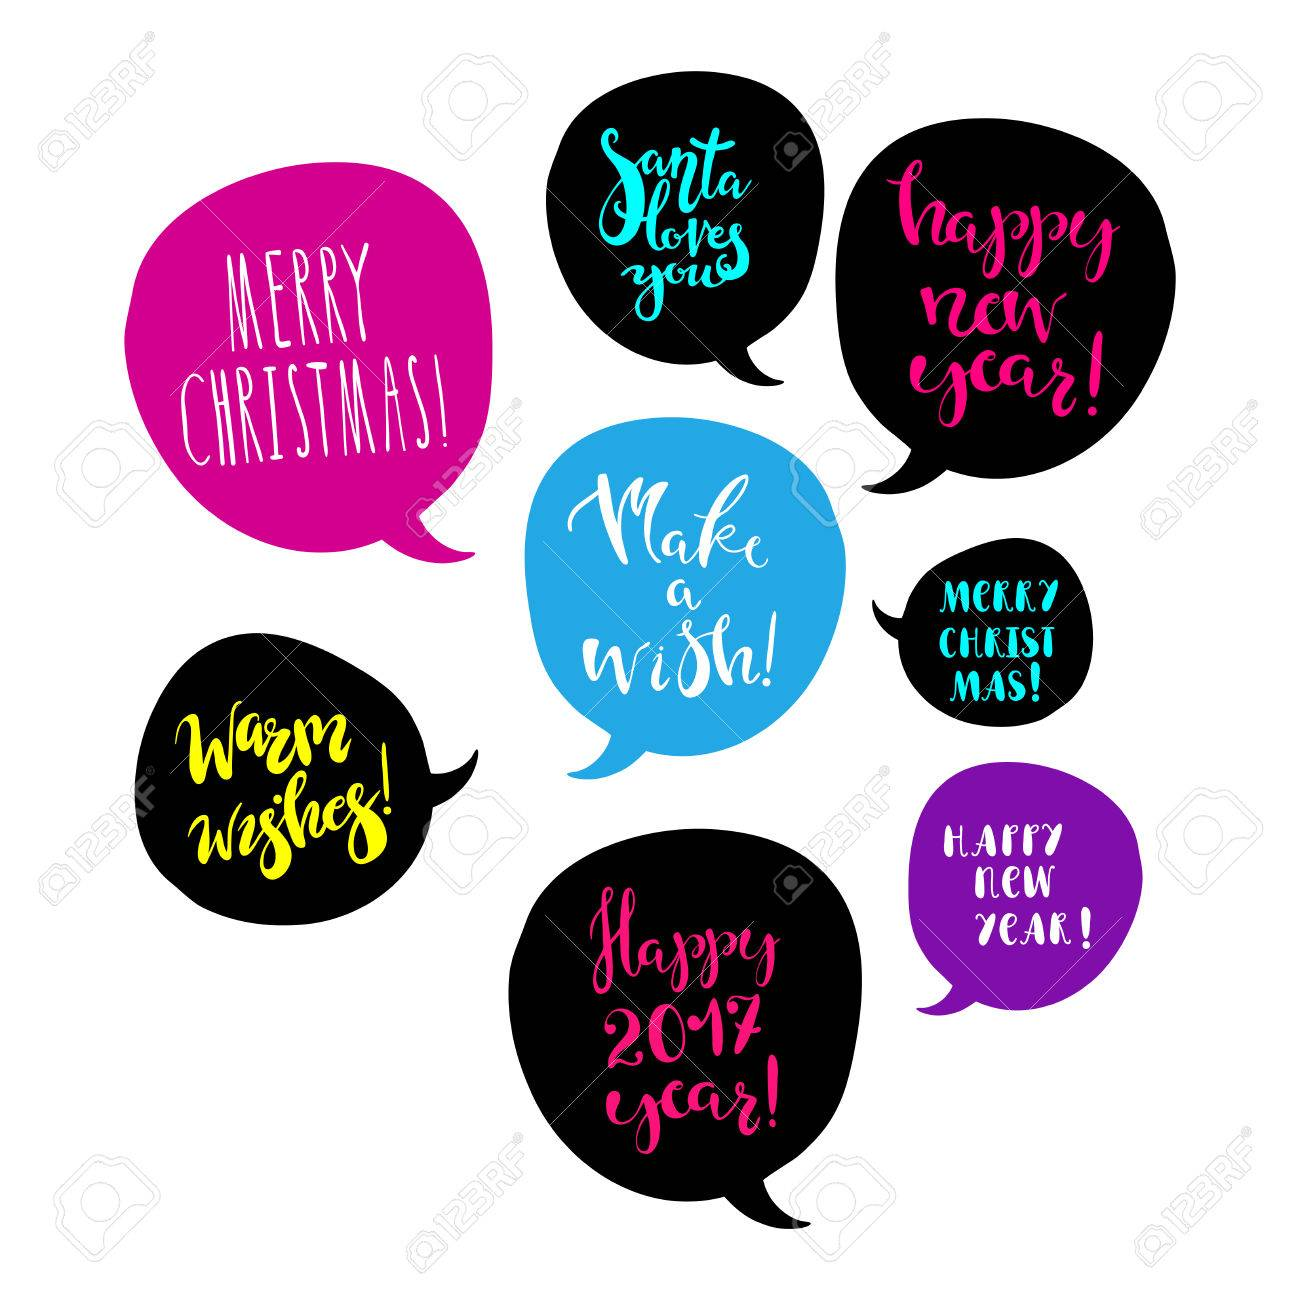 merry christmas and happy new year greetings in speech bubbles bright design element for poster